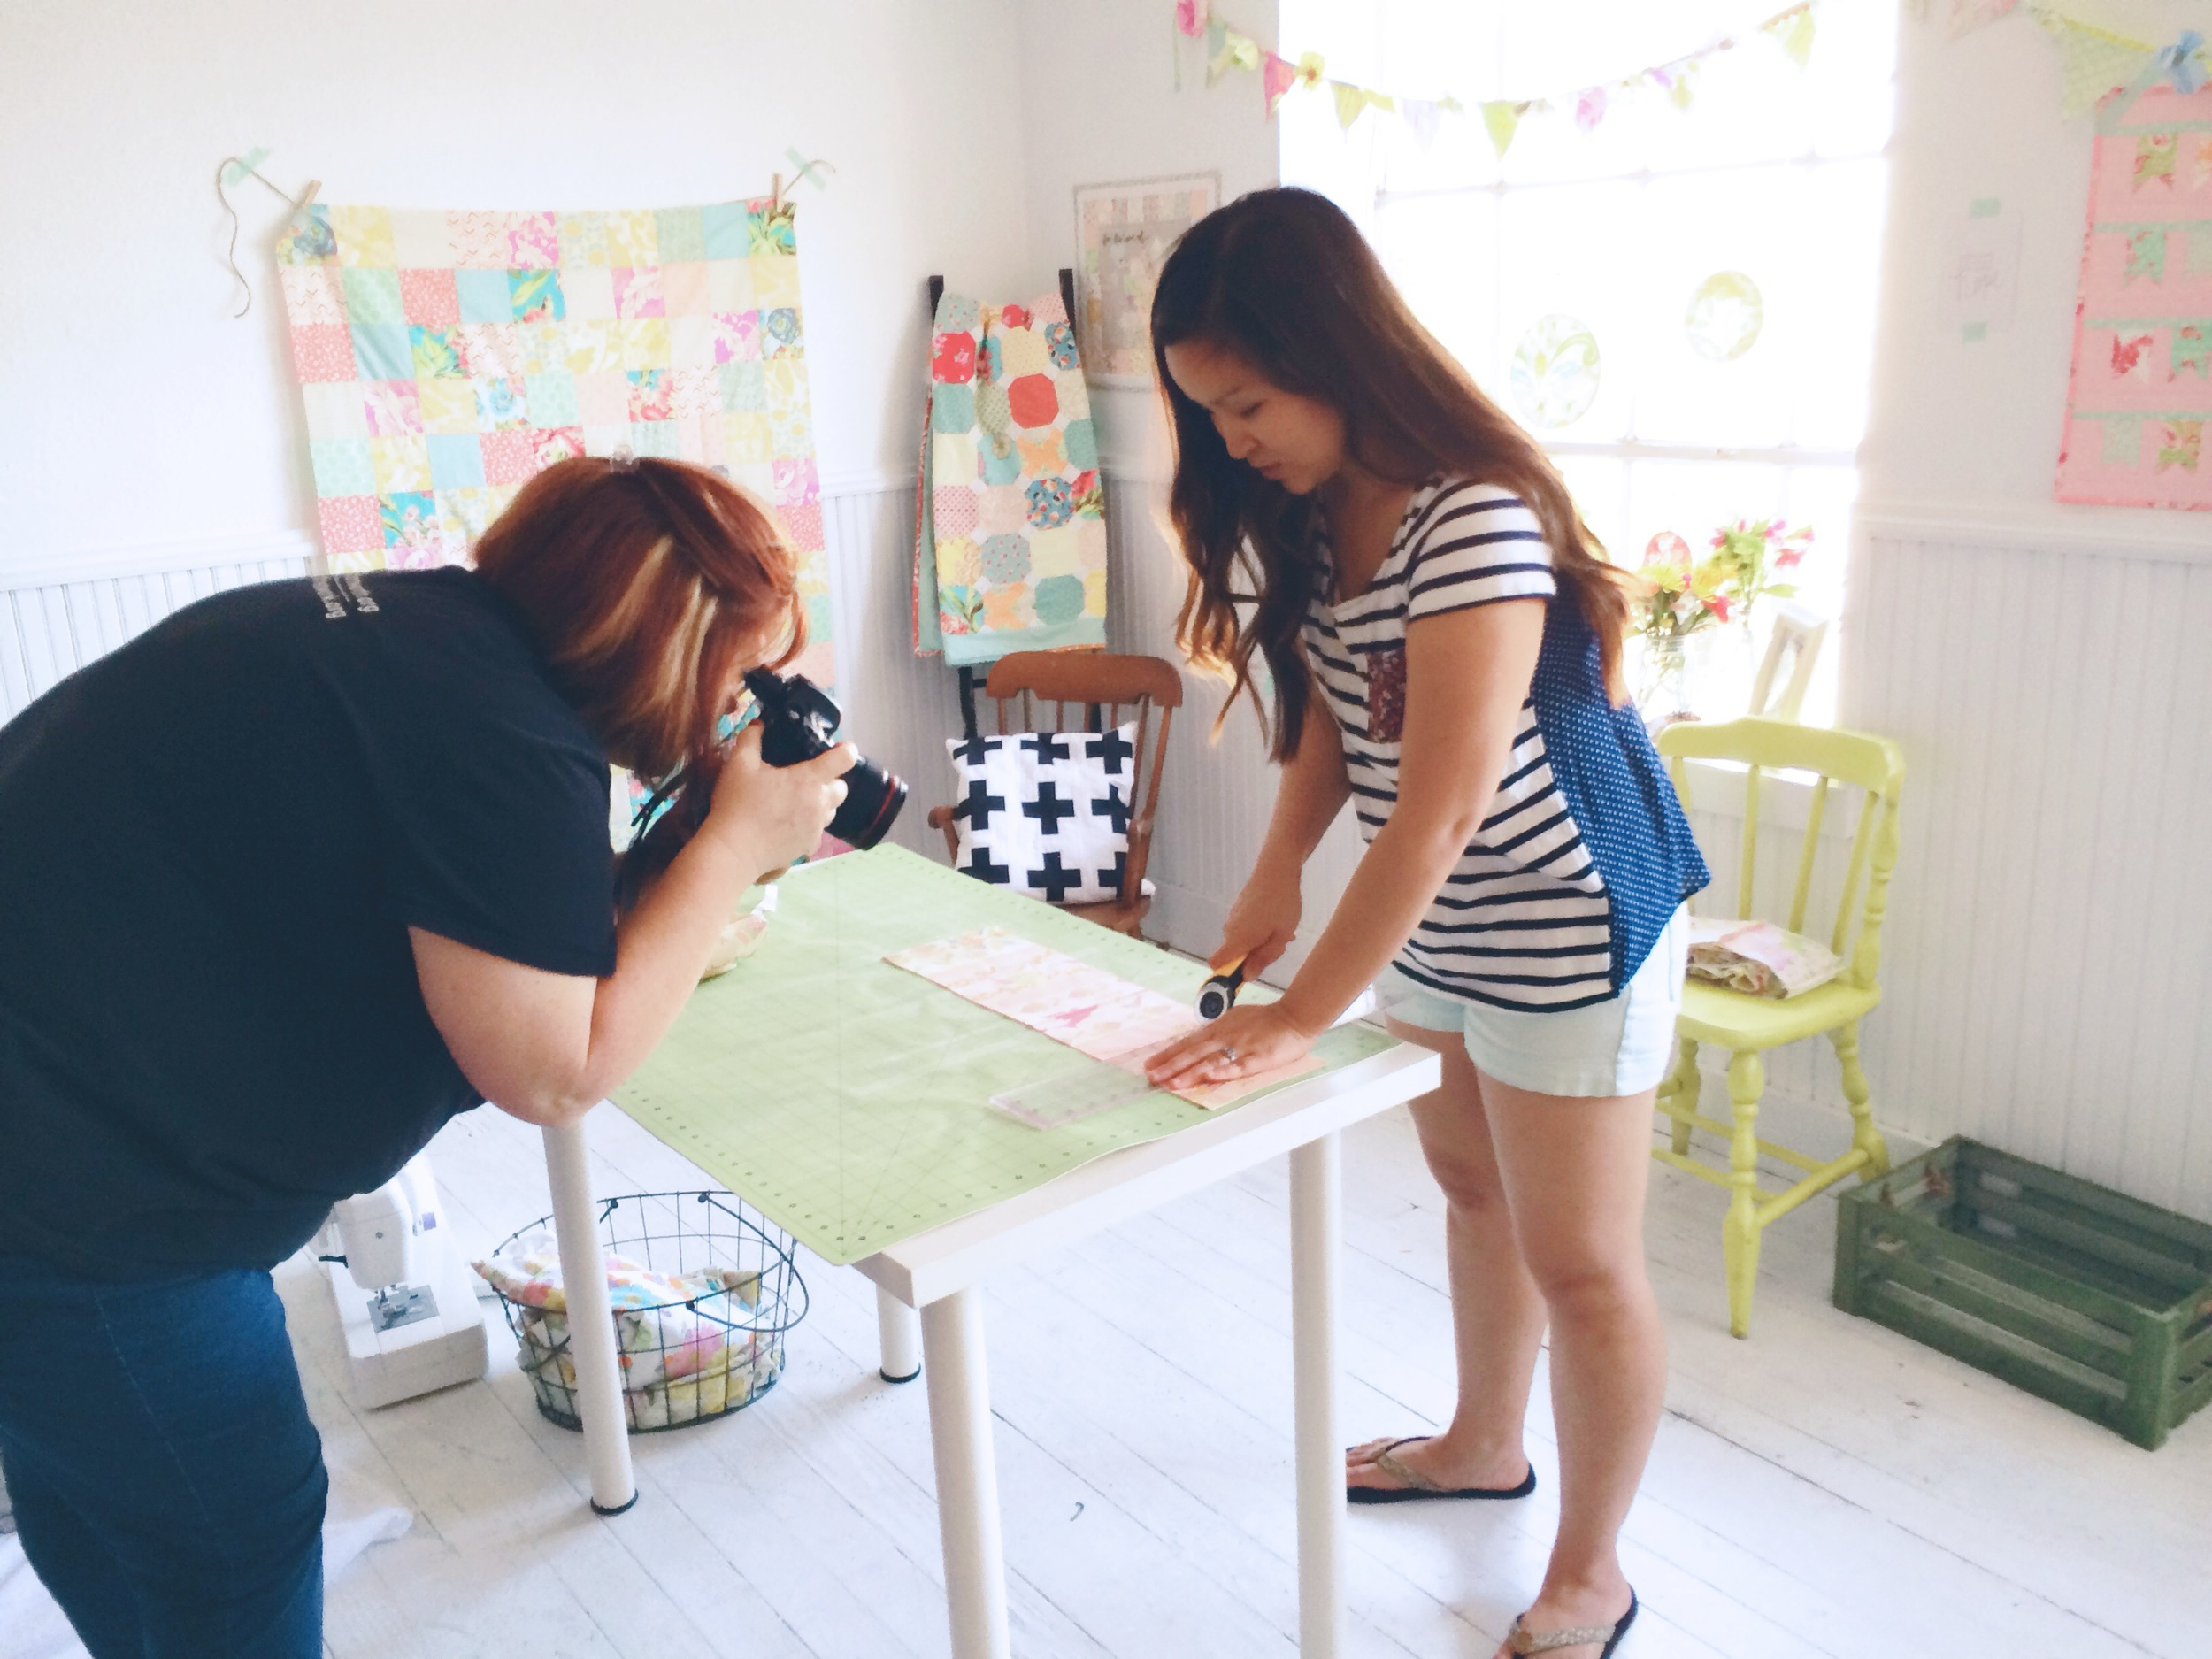 Michelle Monk Photography - The Joy of Quilting - Anna Joy French Designs